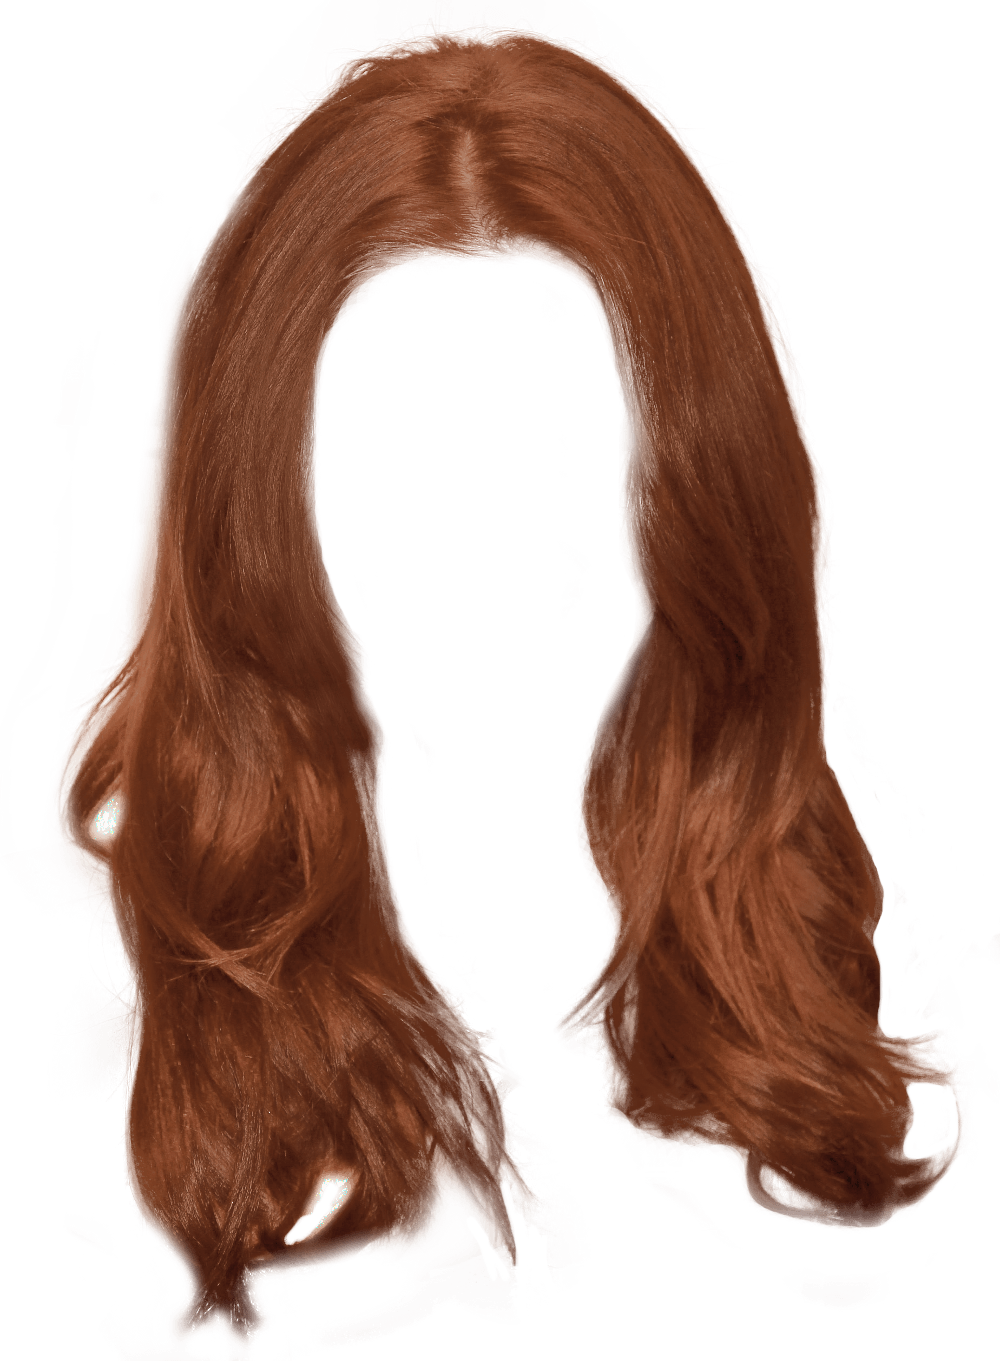 Short Hair clipart ginger hair Transparent Hair PNG Long Red